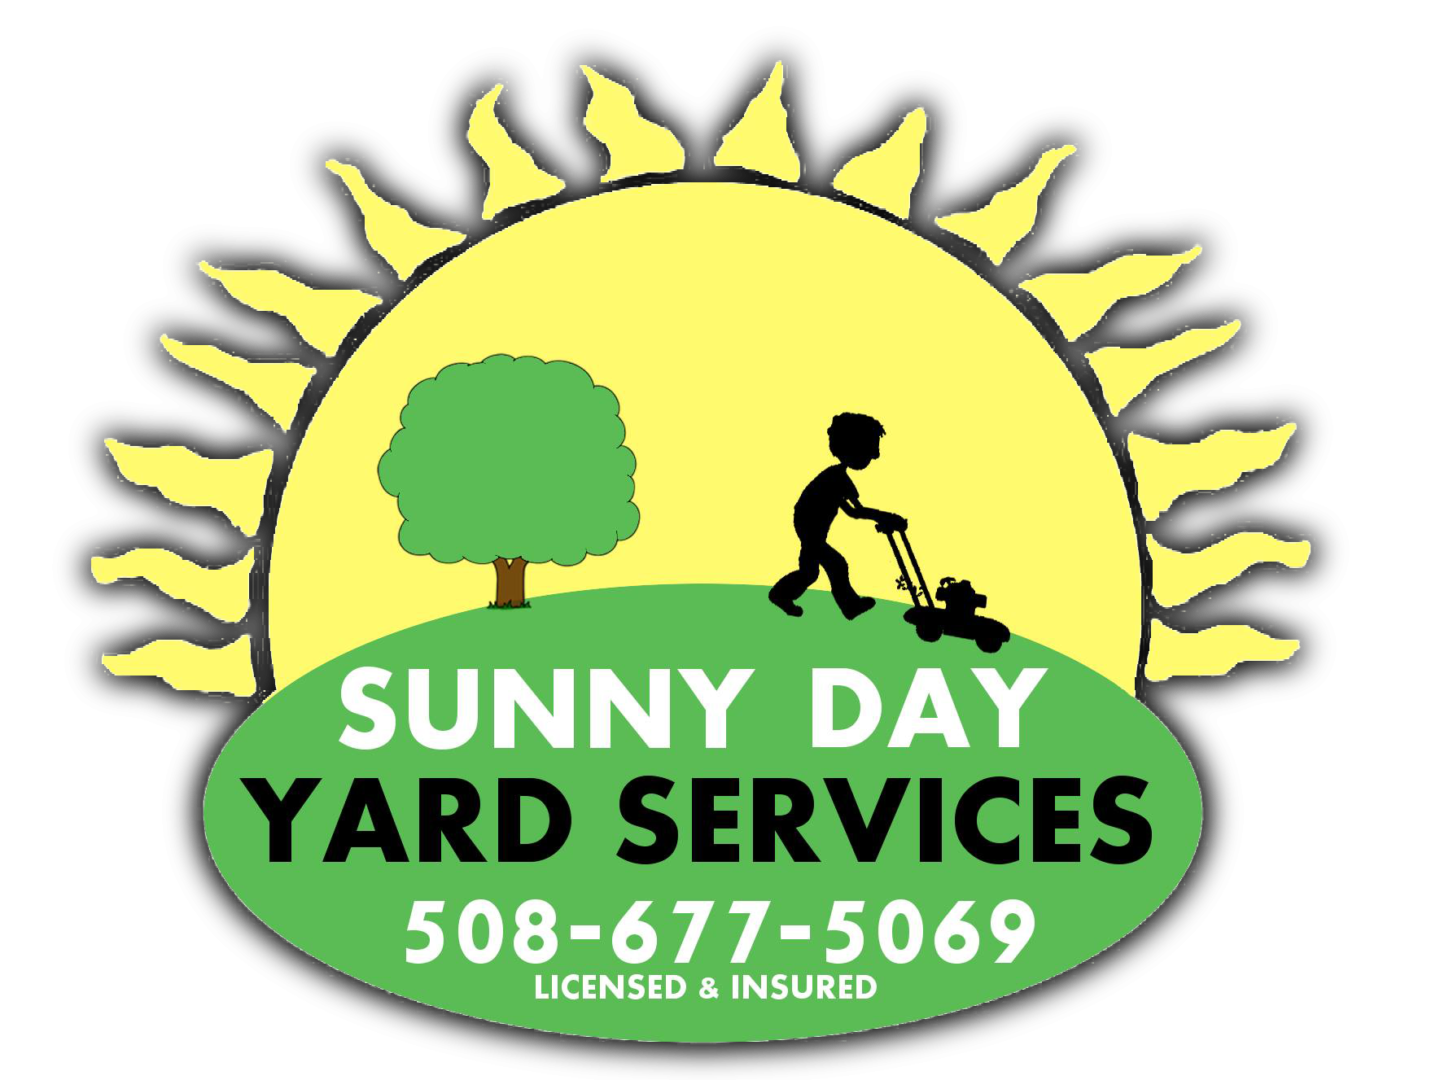 Sunny Day Yard Services